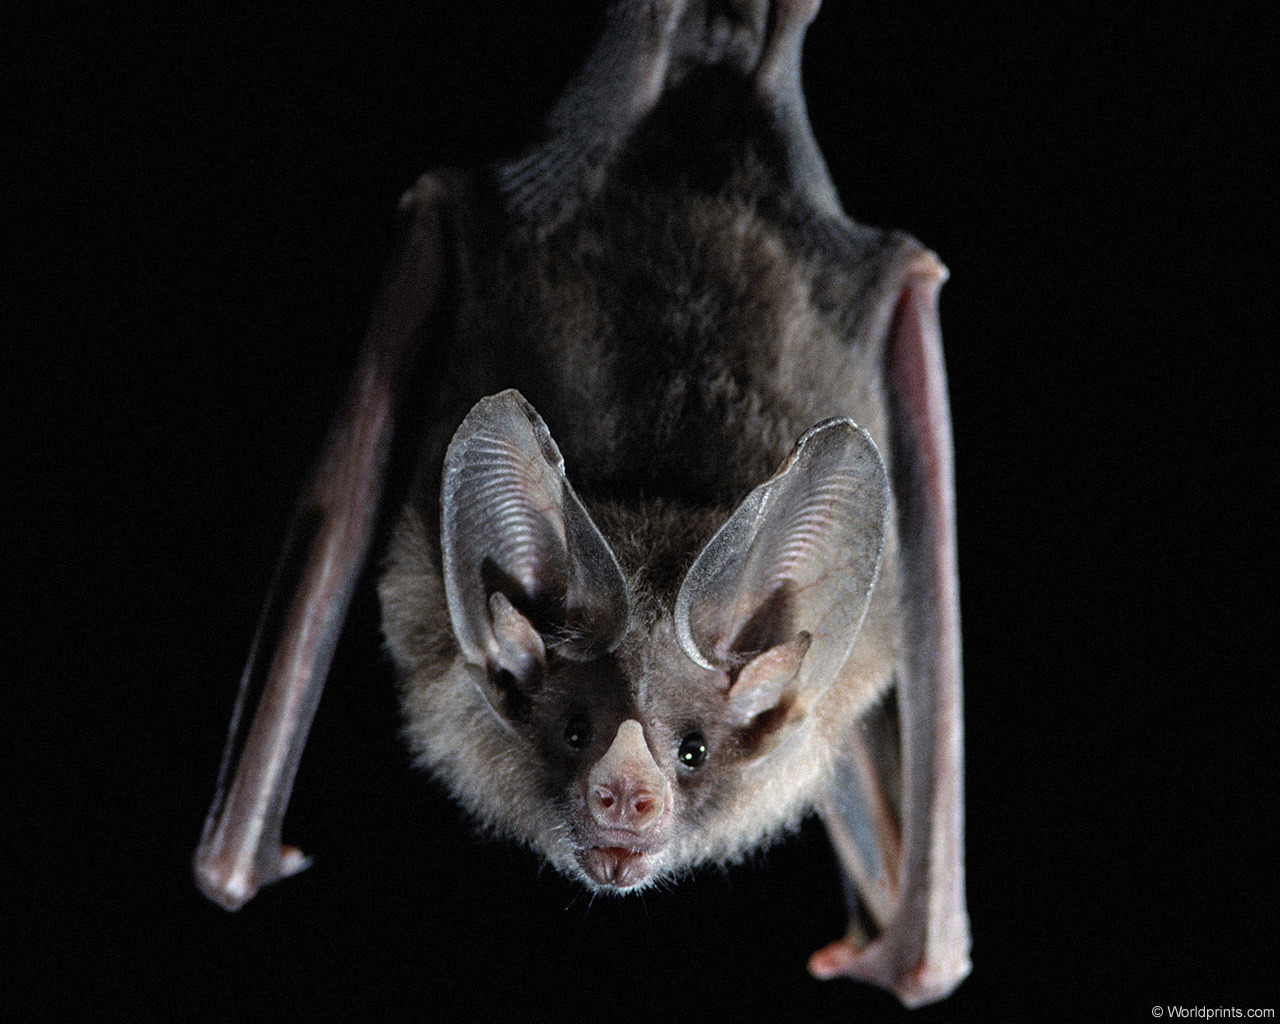 EVERYTHING YOU WANTED TO KNOW ABOUT BATS, BUT ARE TOO AFRAID